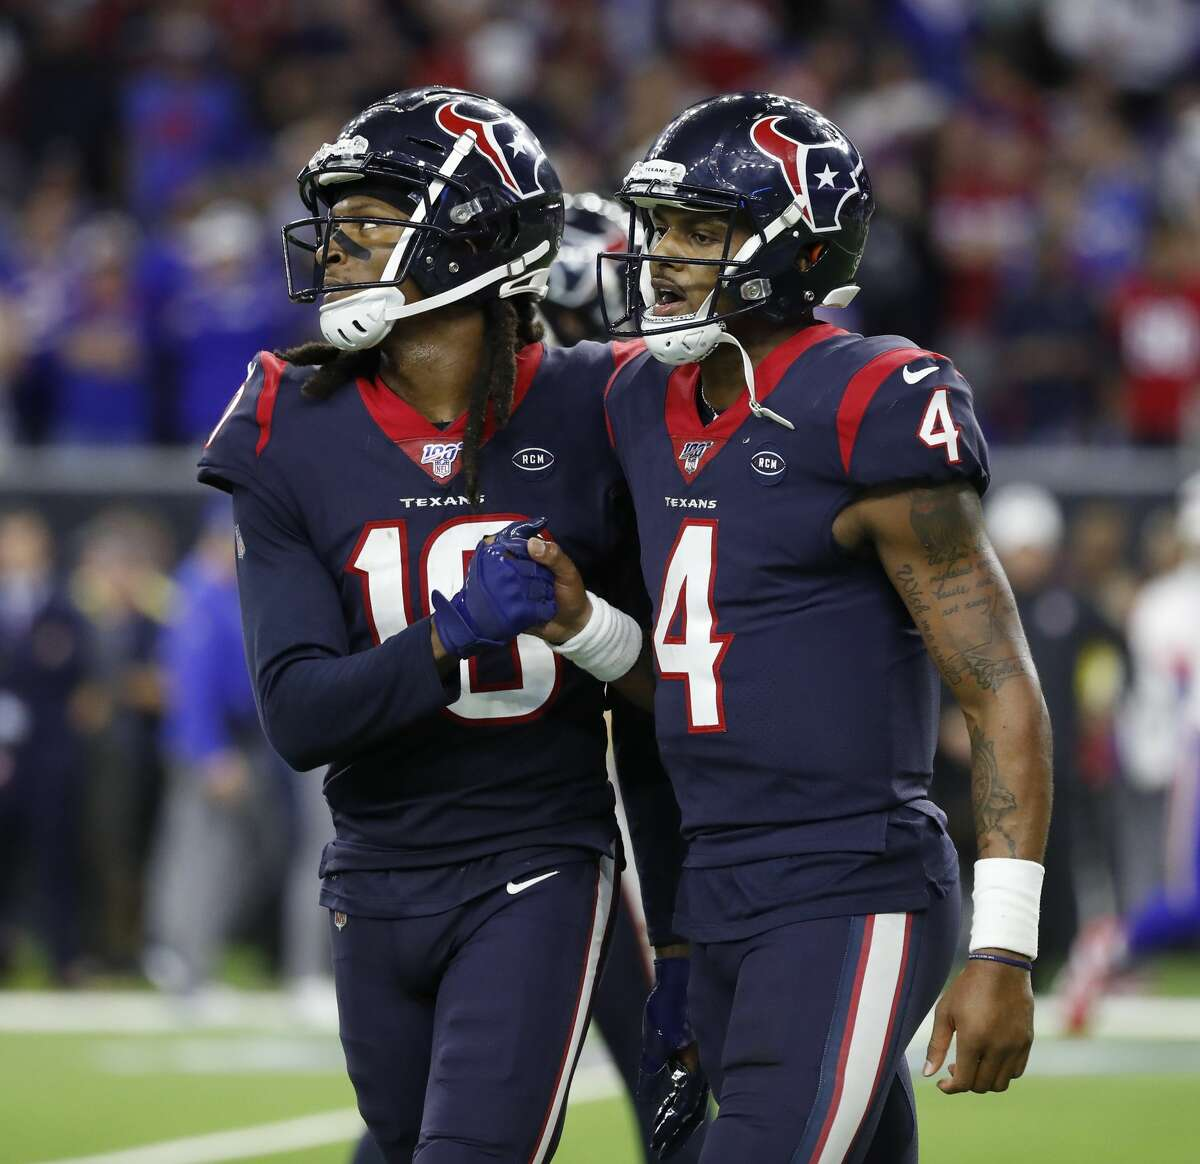 Houston Texans quarterback Deshaun Watson (4) celebrates with wide receiver DeAndre Hopkins (10) after connecting with Texans running back Taiwan Jones (34) which set up the game winning field goal during overtime of an AFC NFL wild card playoff game at NRG Stadium, Saturday, Jan. 4, 2020, in Houston.